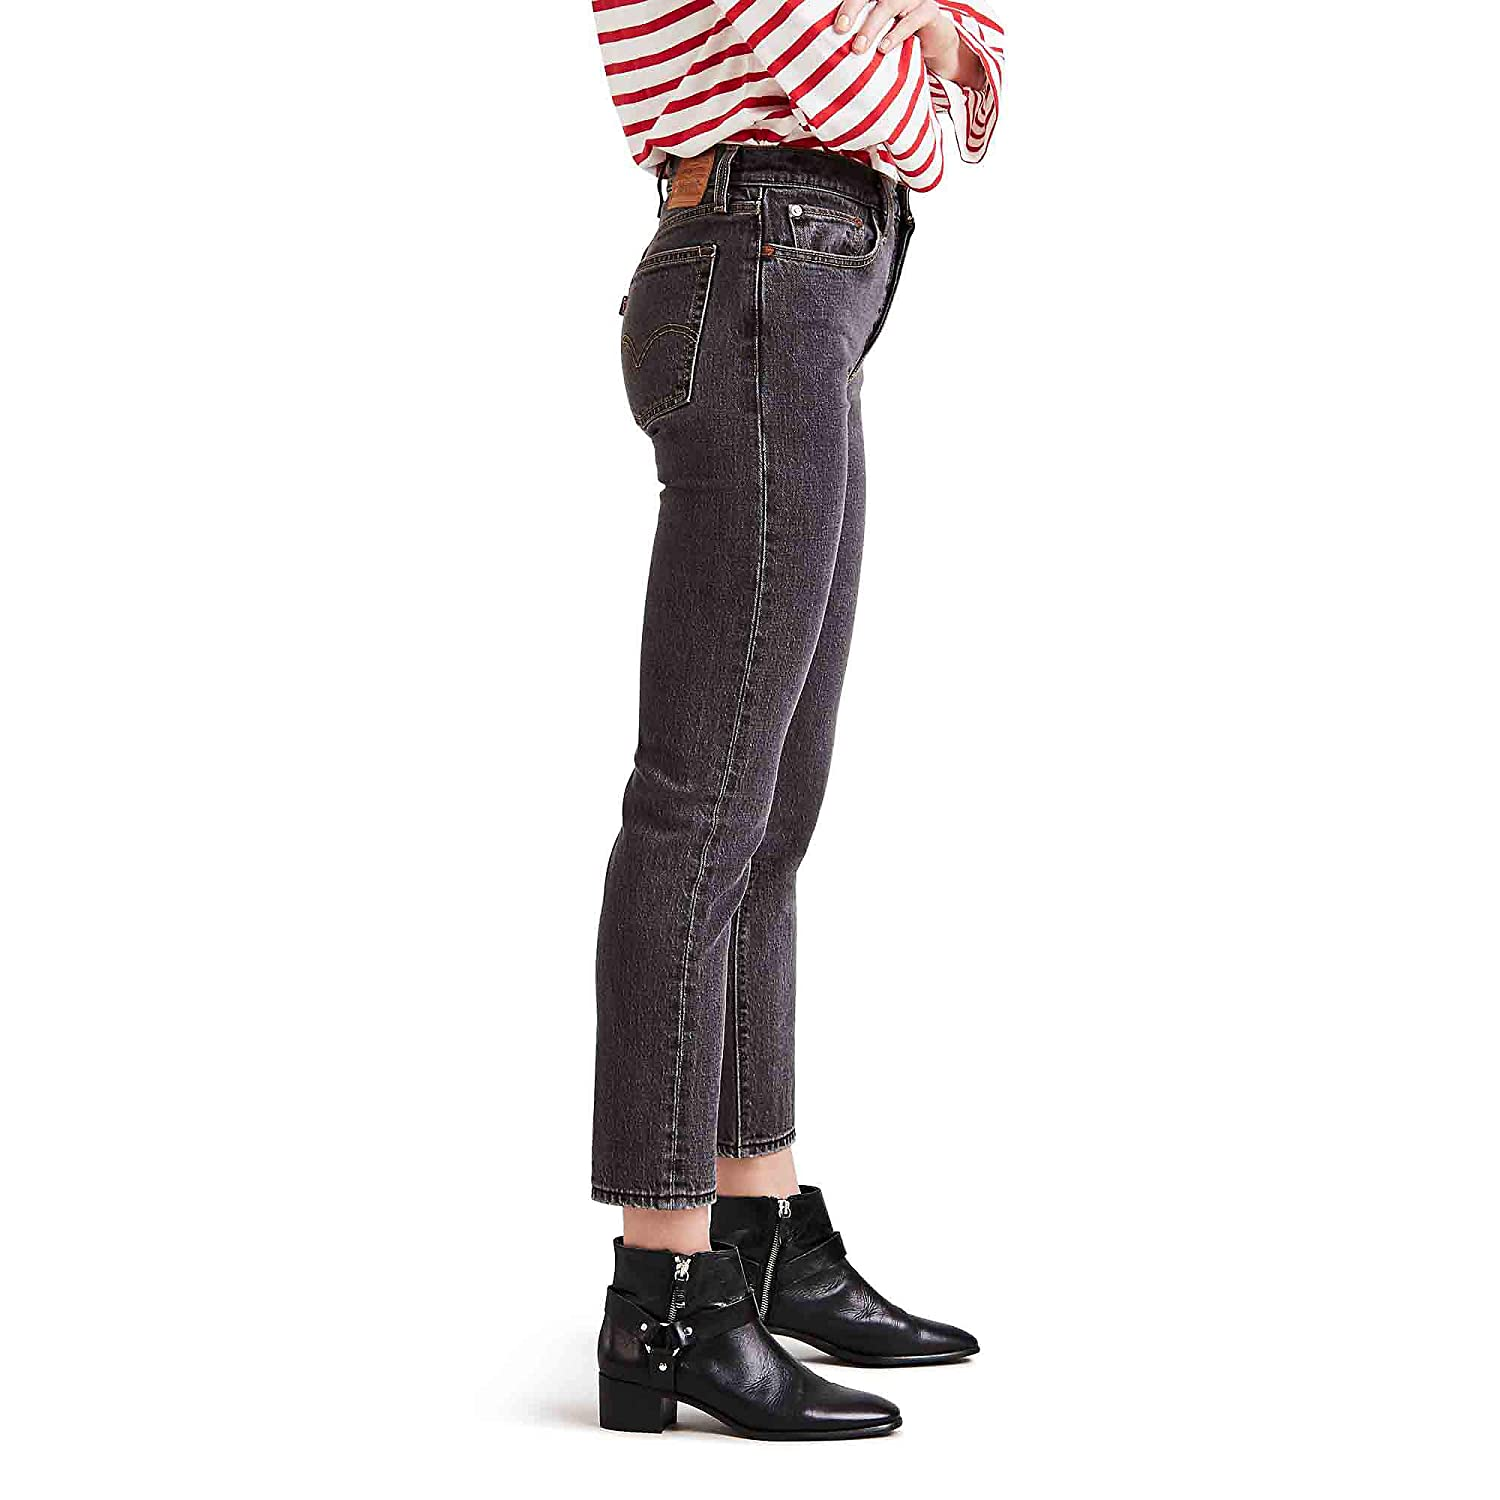 Levi's Women's Wedgie Icon Jeans